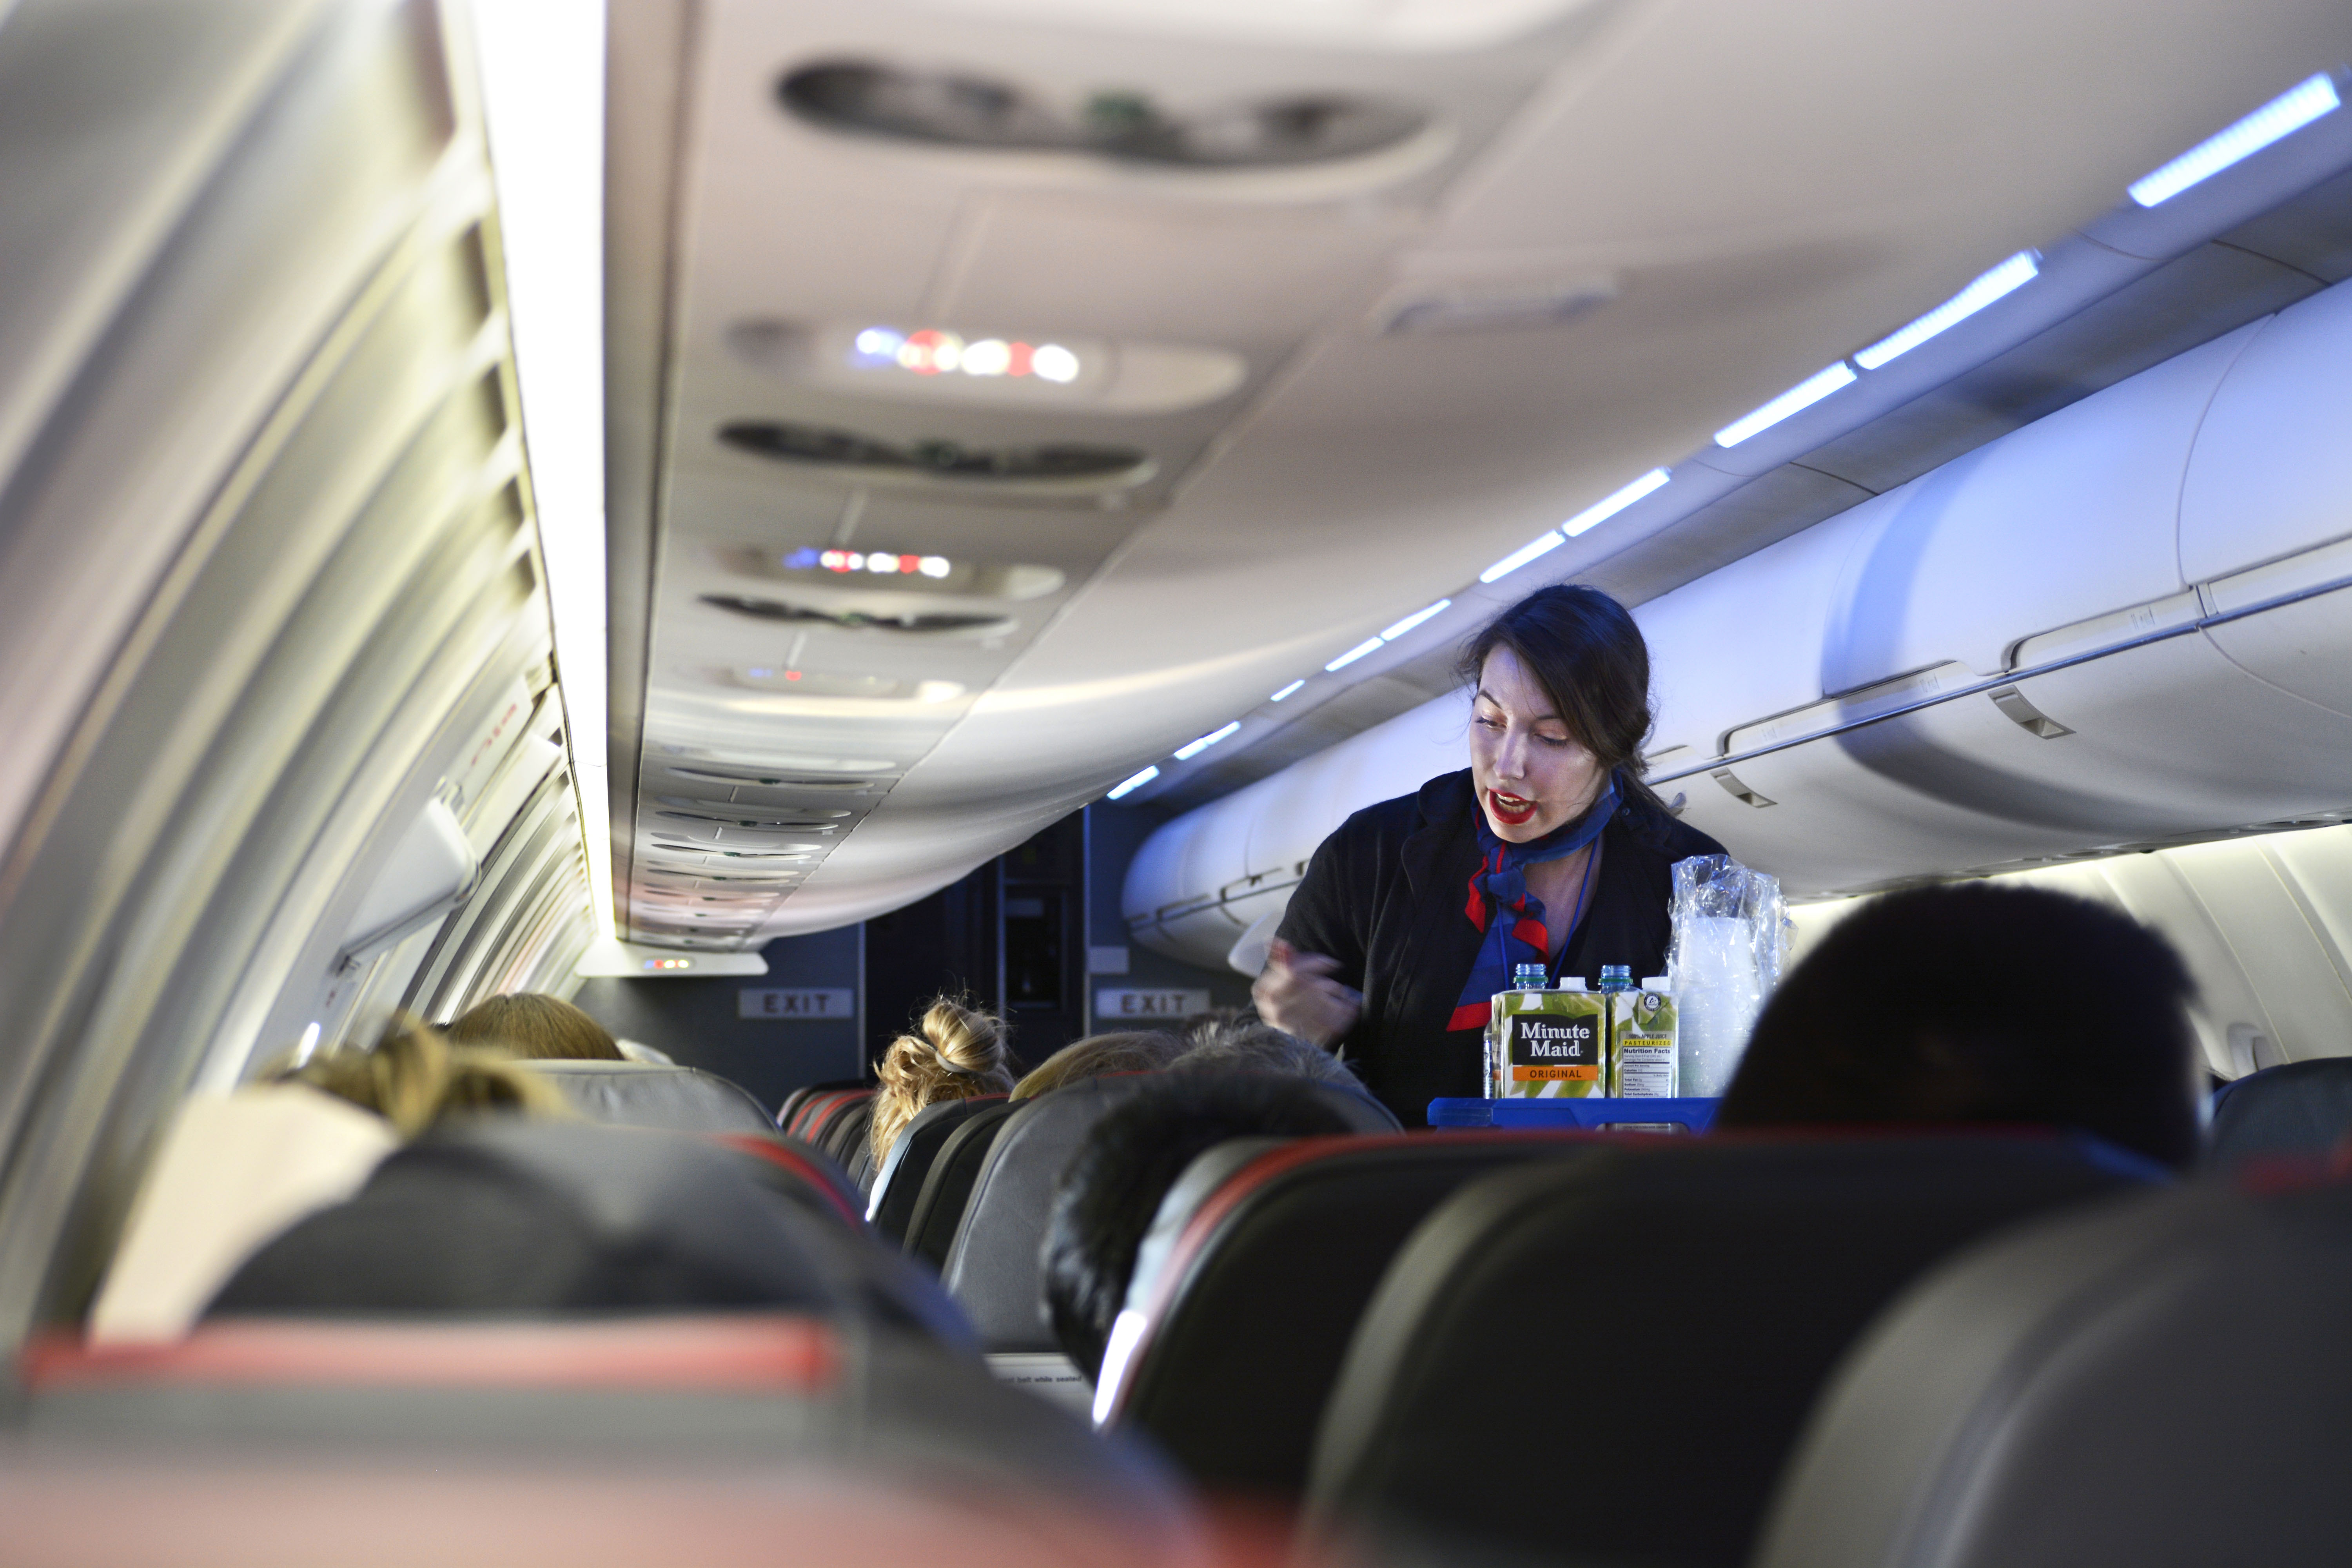 American Airlines extends ban on alcohol sales to main cabin passengers until 2022